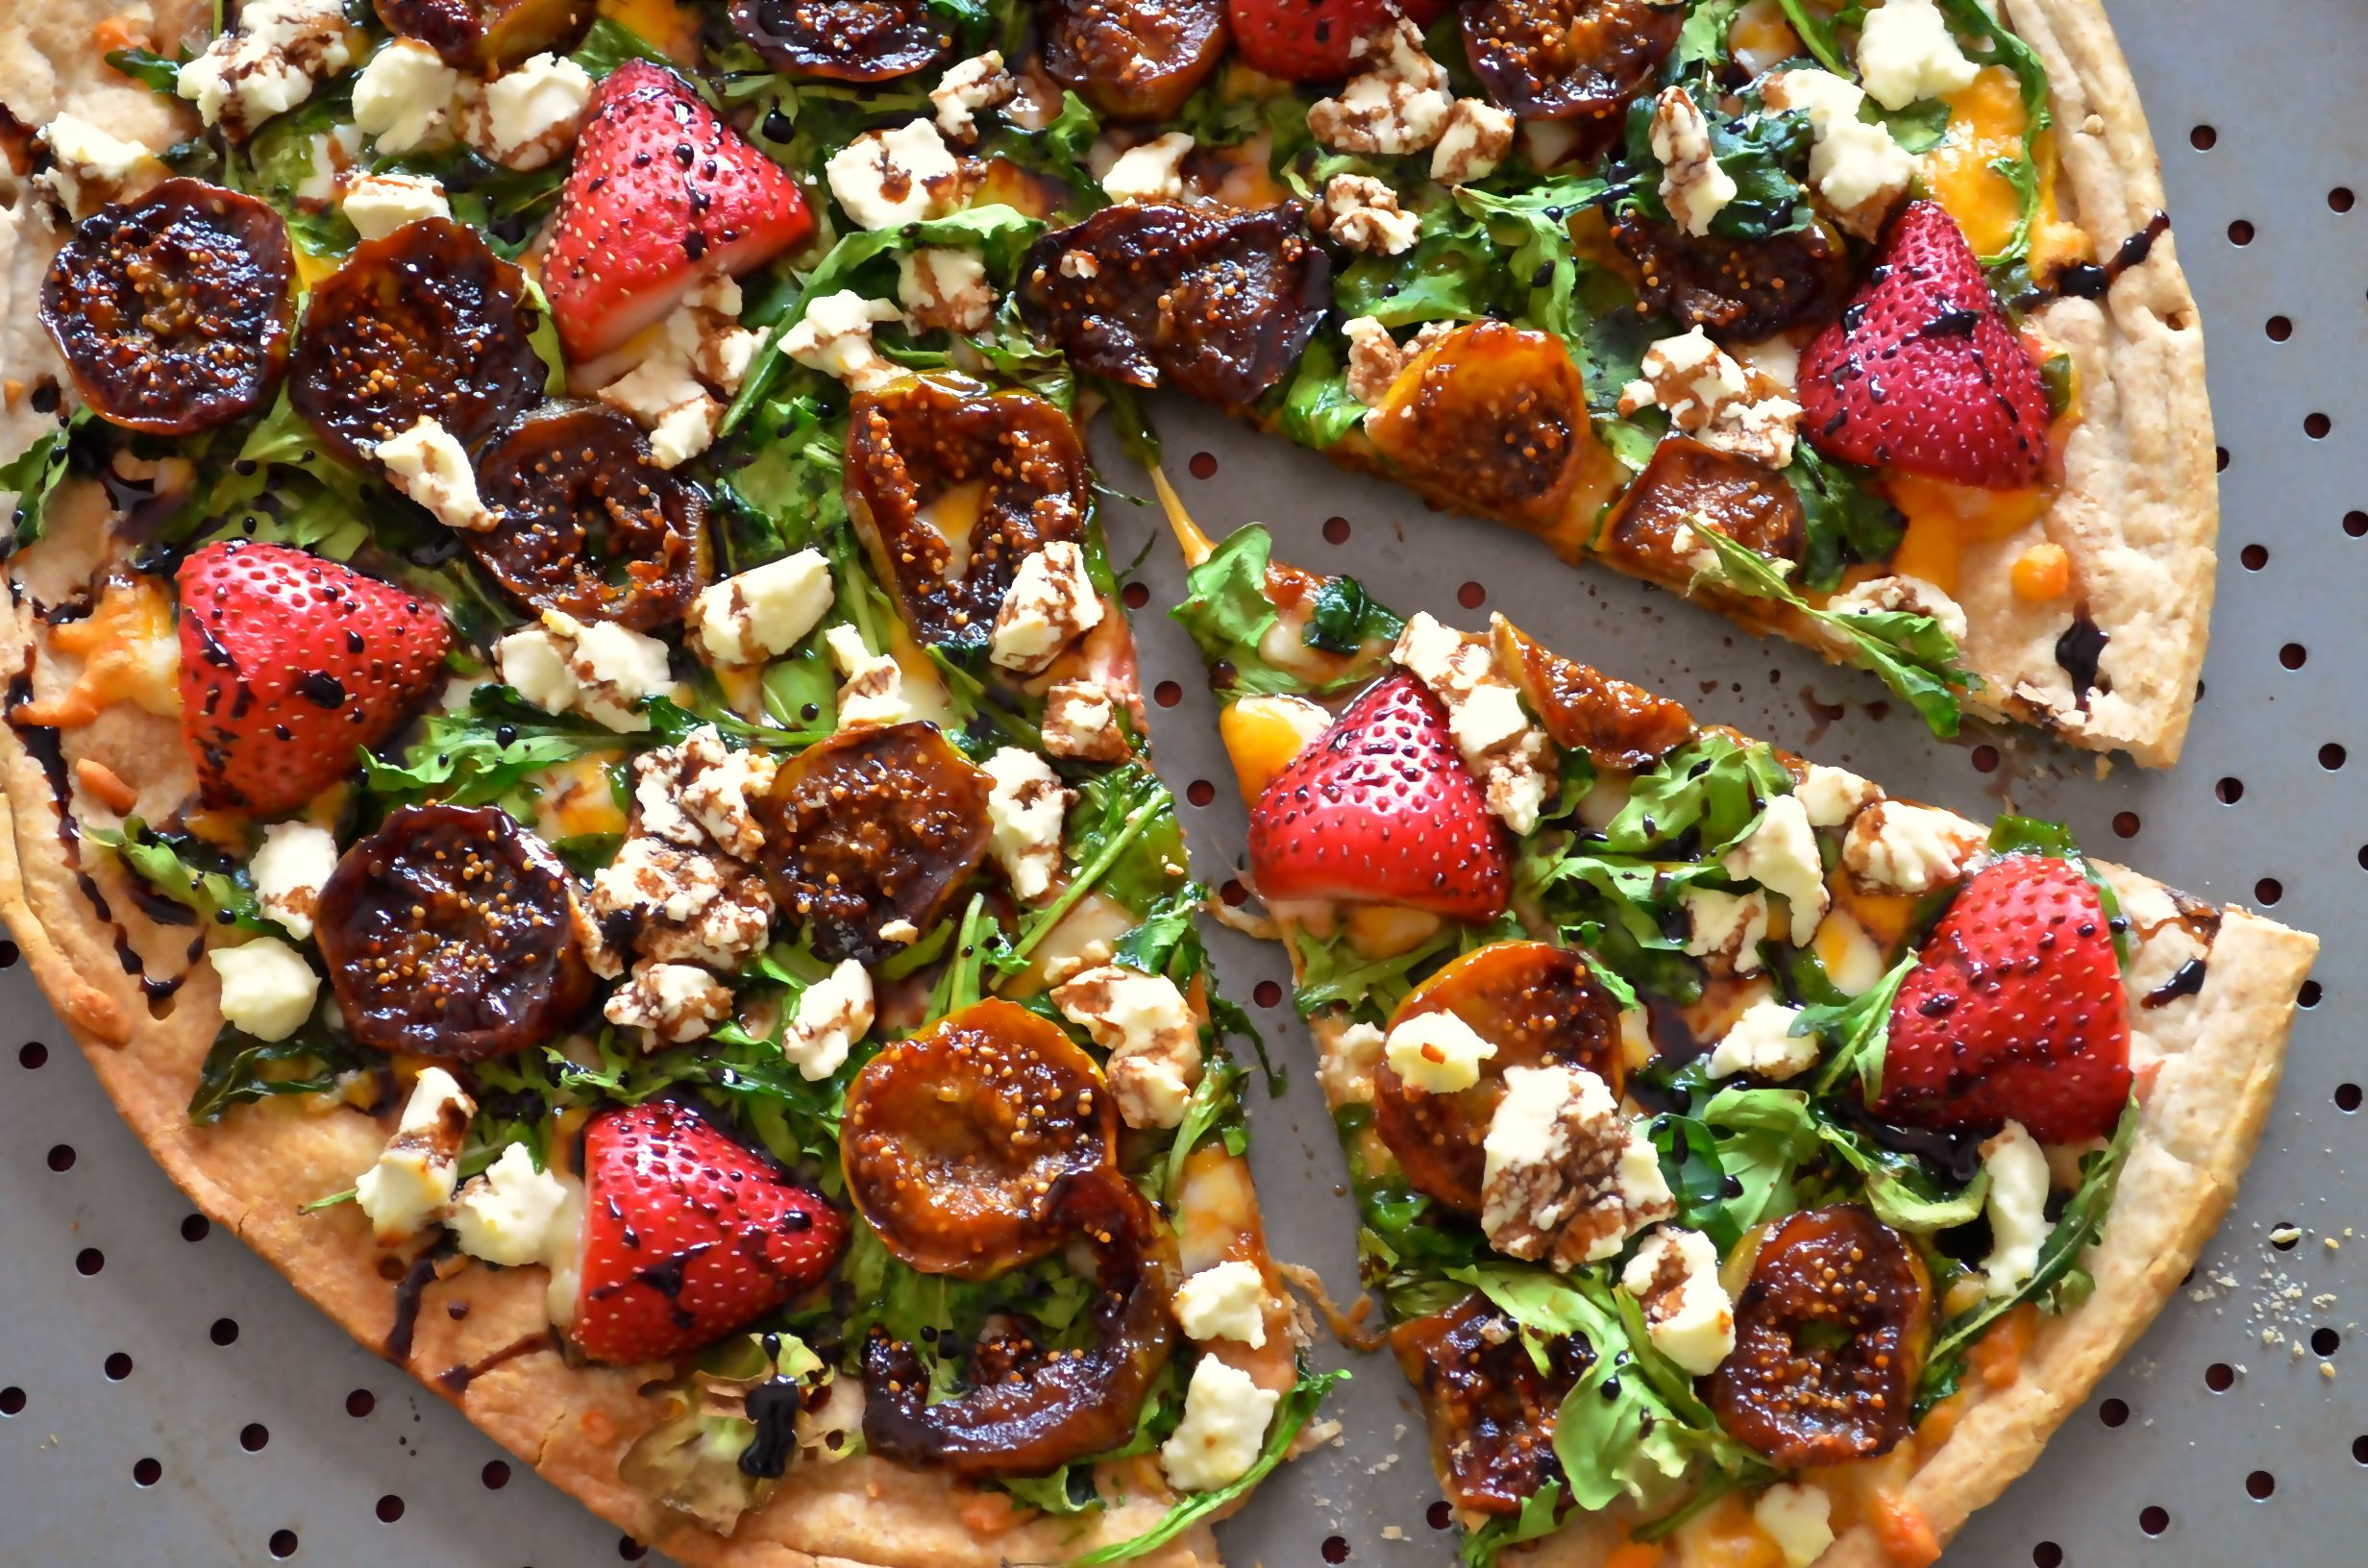 Caramelized Figs Goat Cheese Pizza With Balsamic Glaze Recipe Goat Cheese Pizza Goat Cheese Balsamic Glaze Recipes